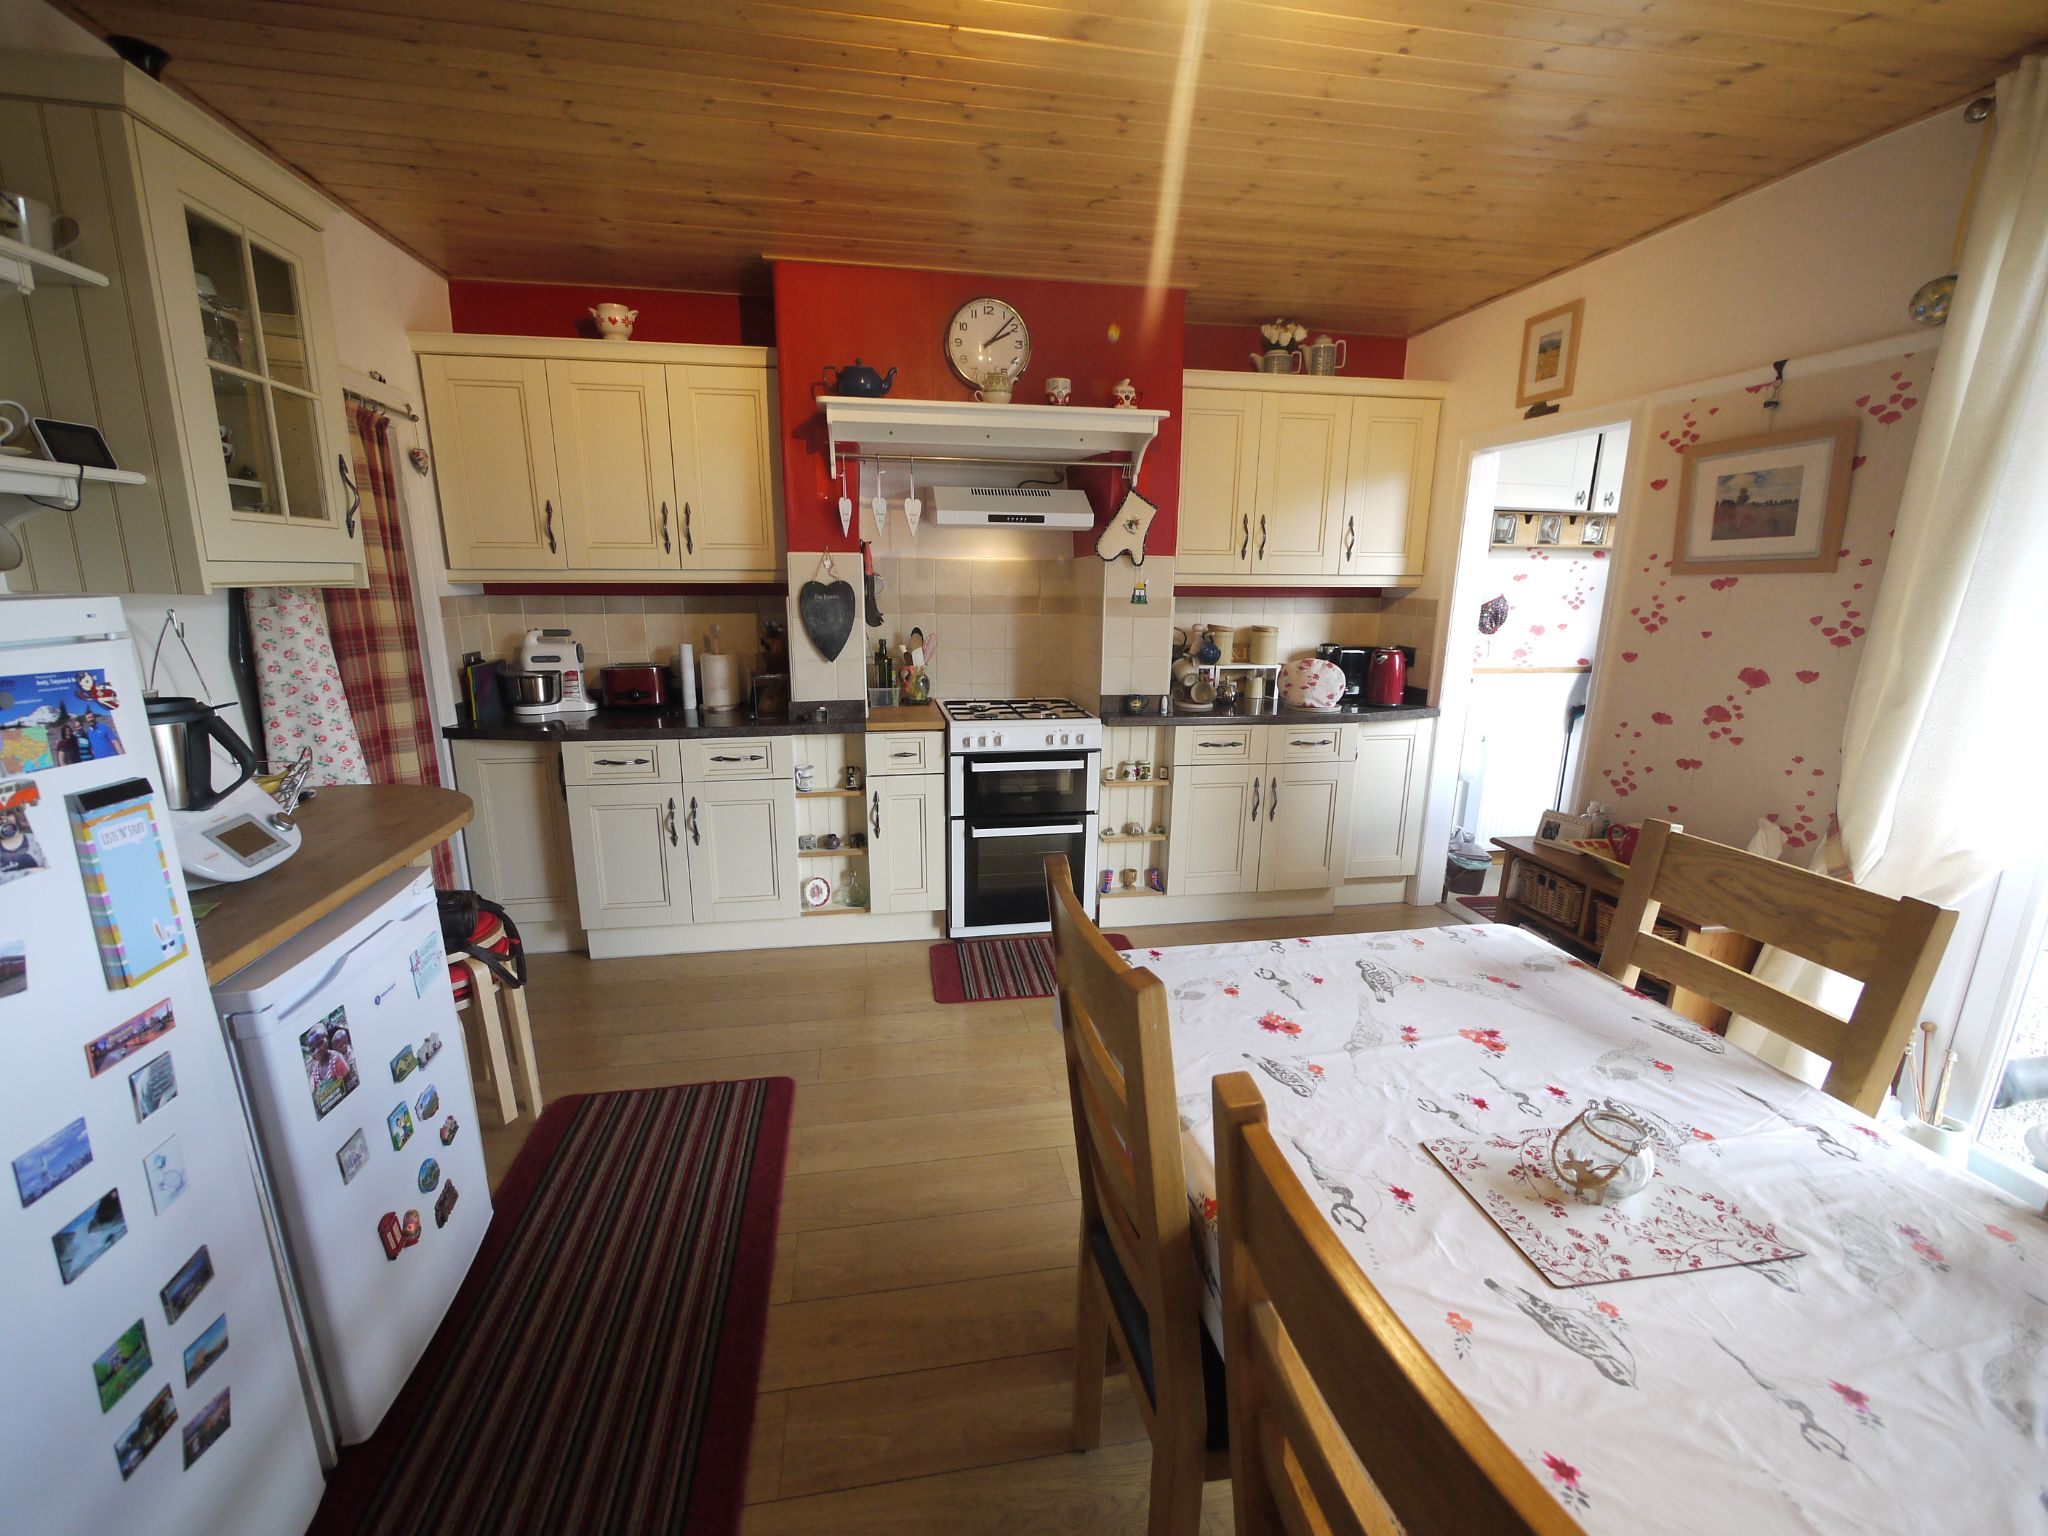 3 bedroom semi-detached house SSTC in Calderdale - Photograph 9.